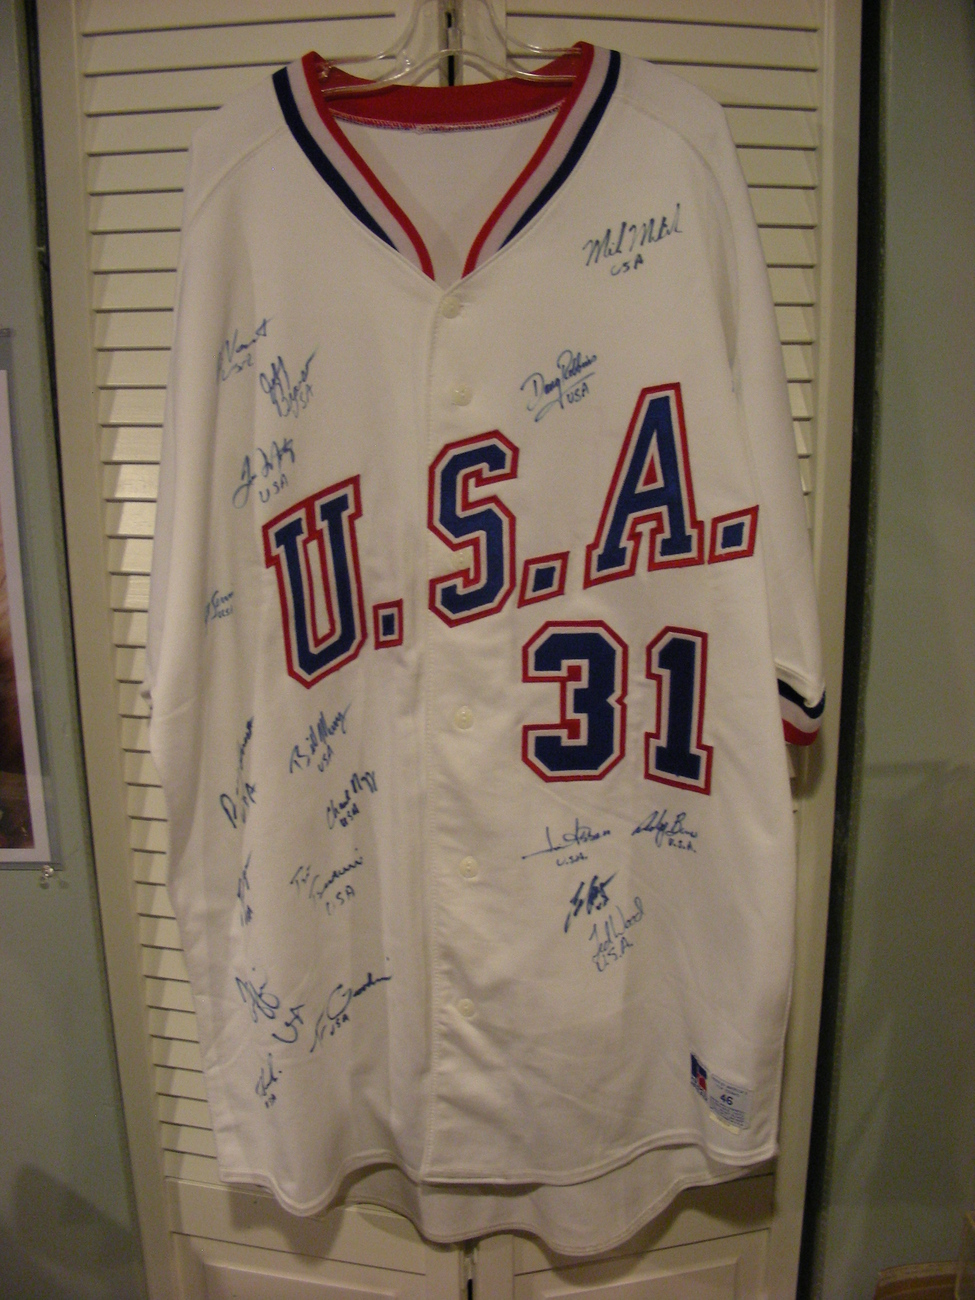 1988 OLYMPIC GOLD USA BASEBALL TEAM  20 SIGNED AUTO JERSEY PSA/DNA LETTER & SOP